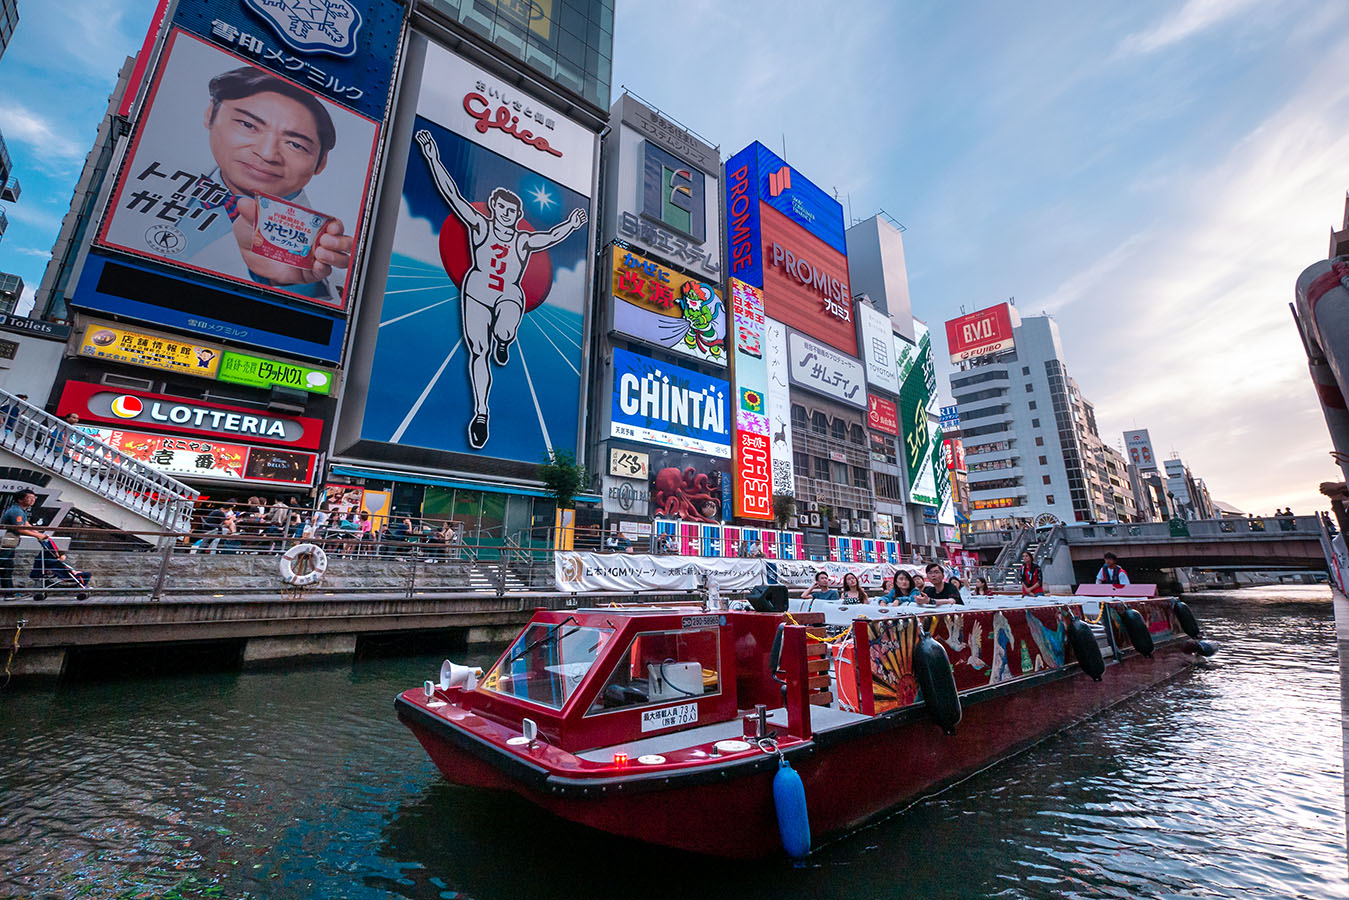 Dotonbori Pirates Cruise